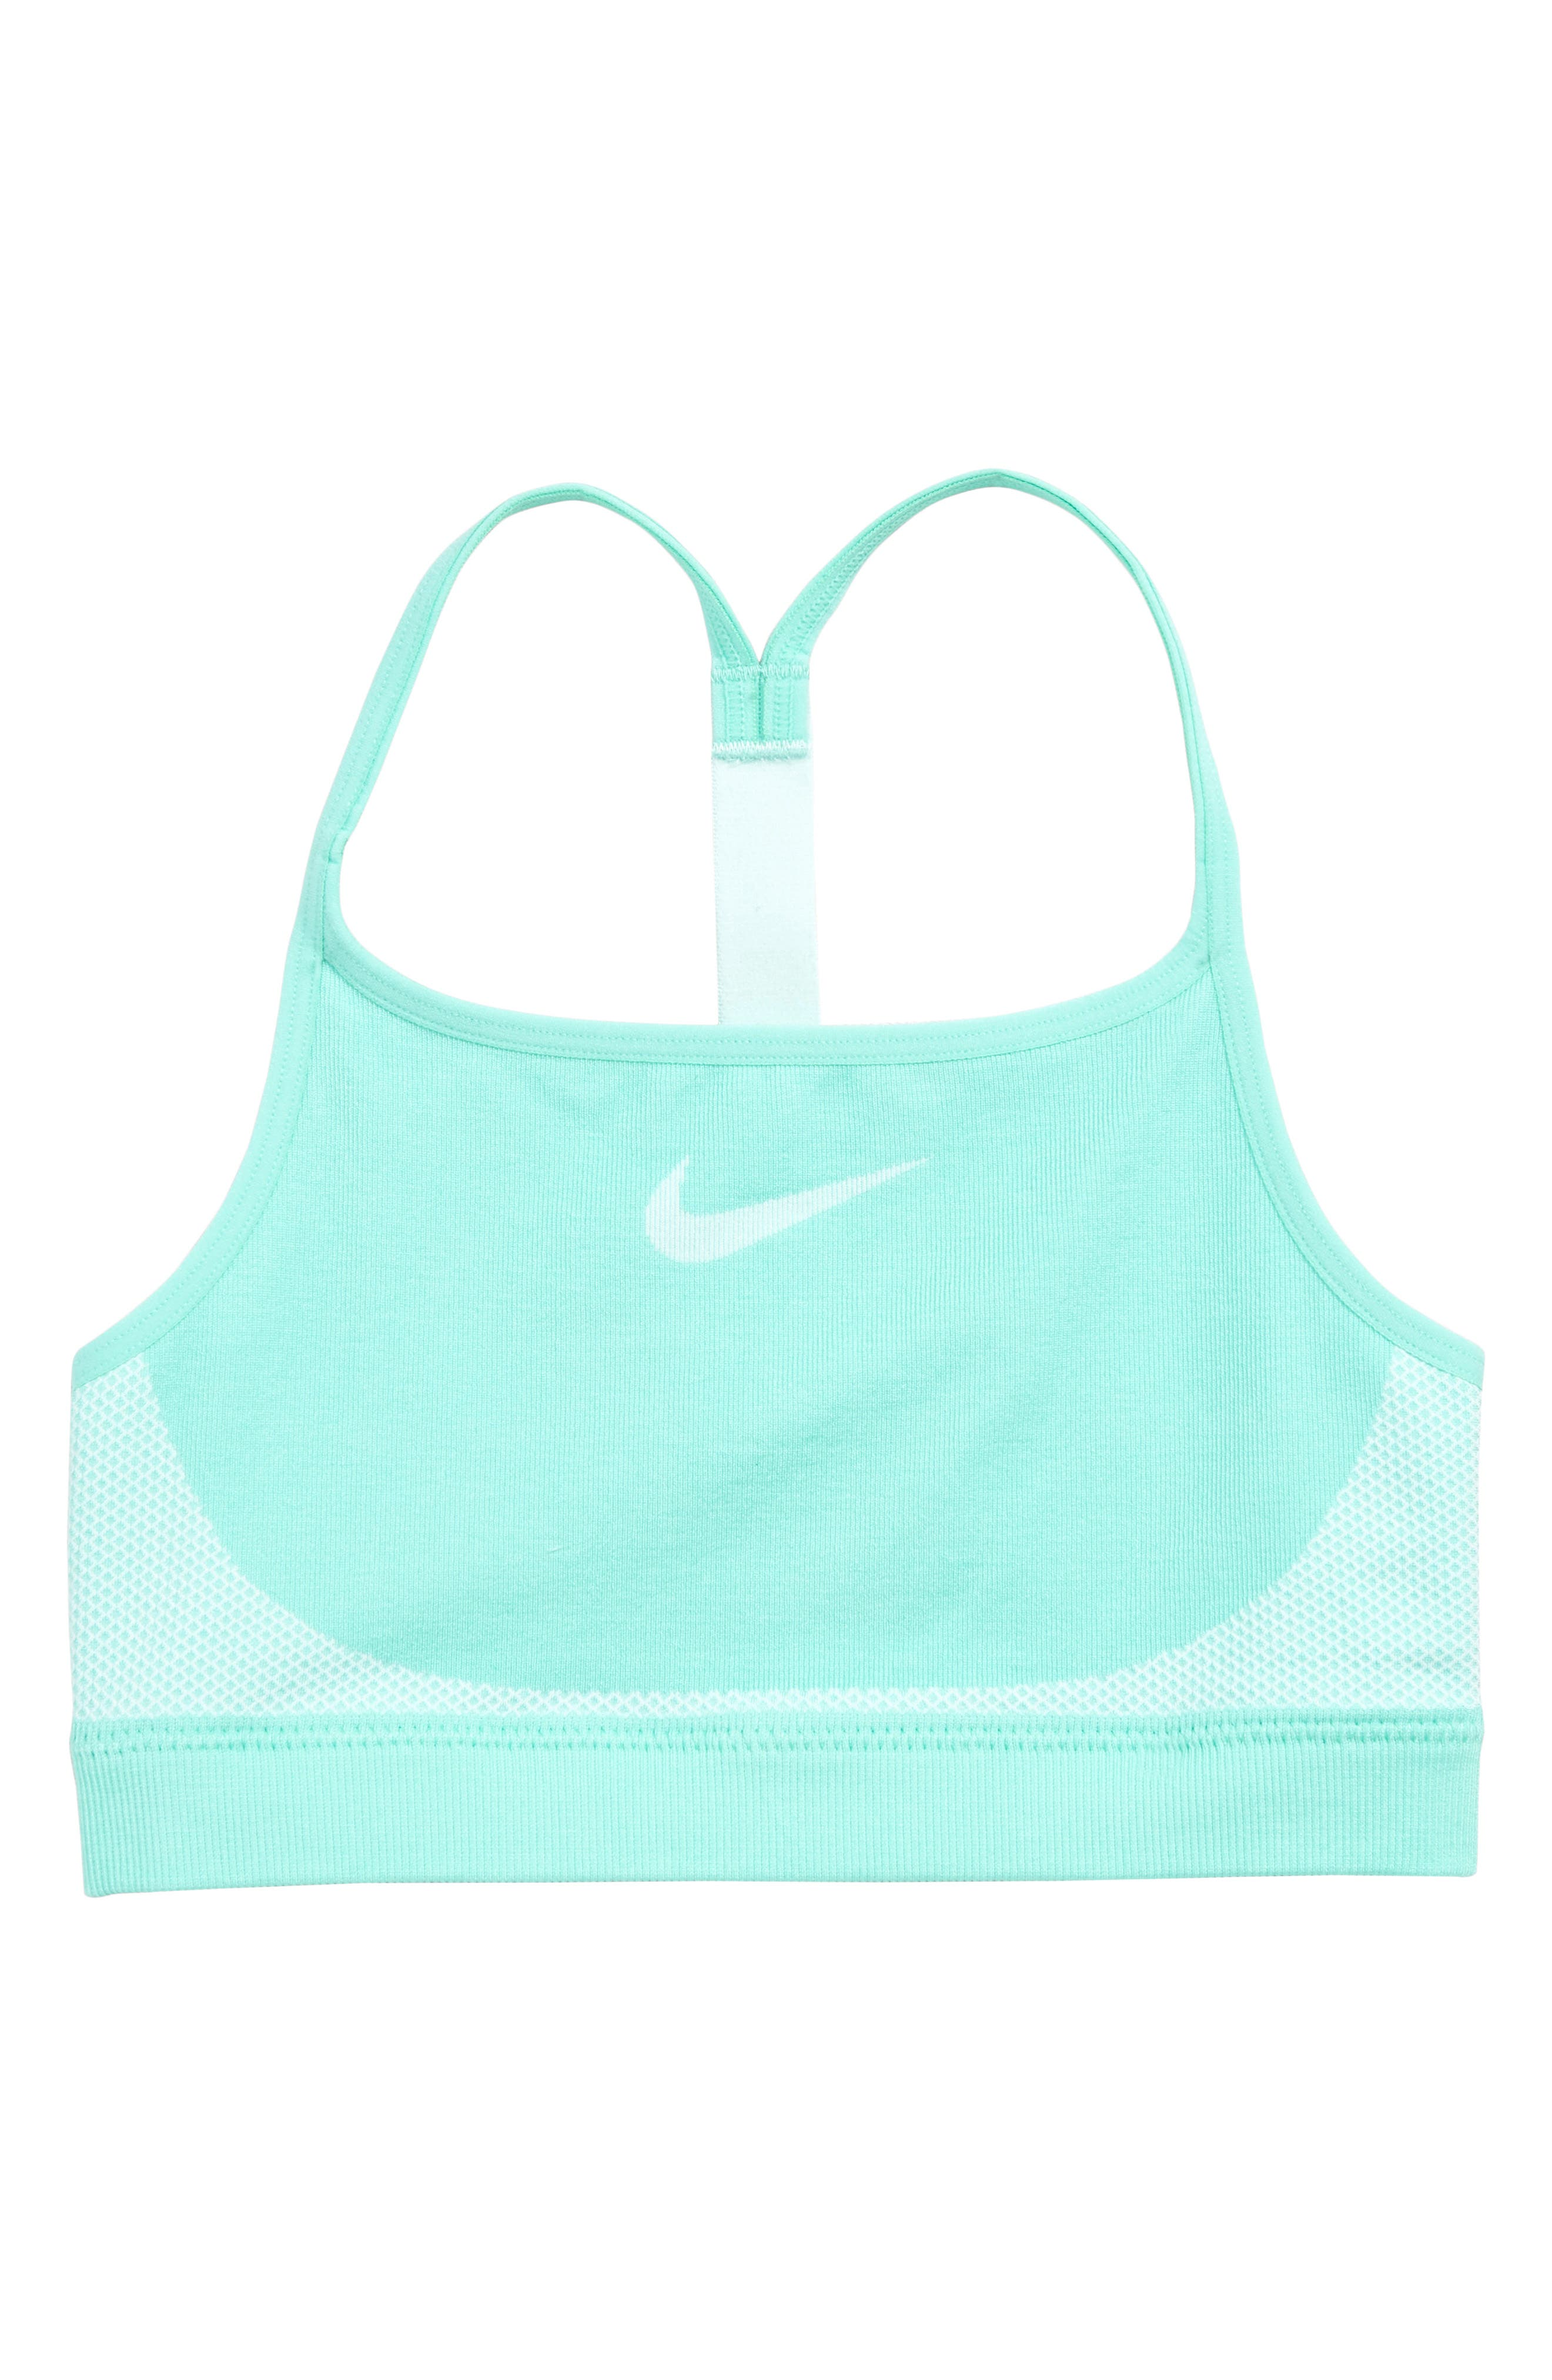 NIKE Seamless Sports Bra, Main, color, TROPICAL/ TEAL TINT